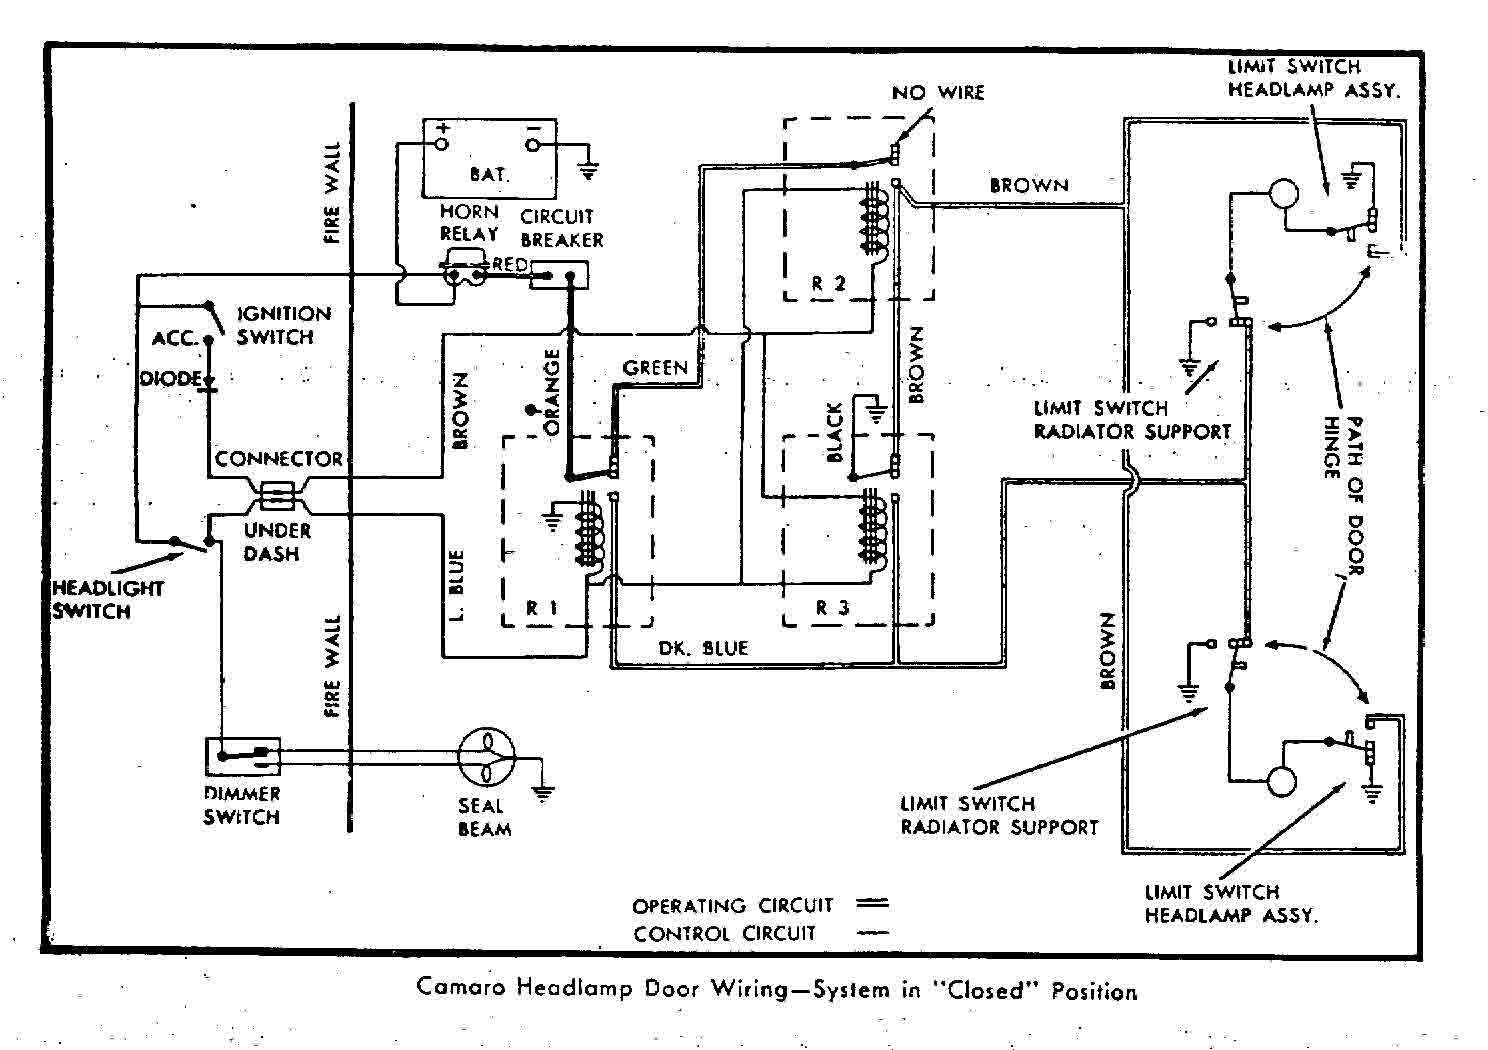 67rswire2 69 camaro ac switch wiring data schematics wiring diagram \u2022